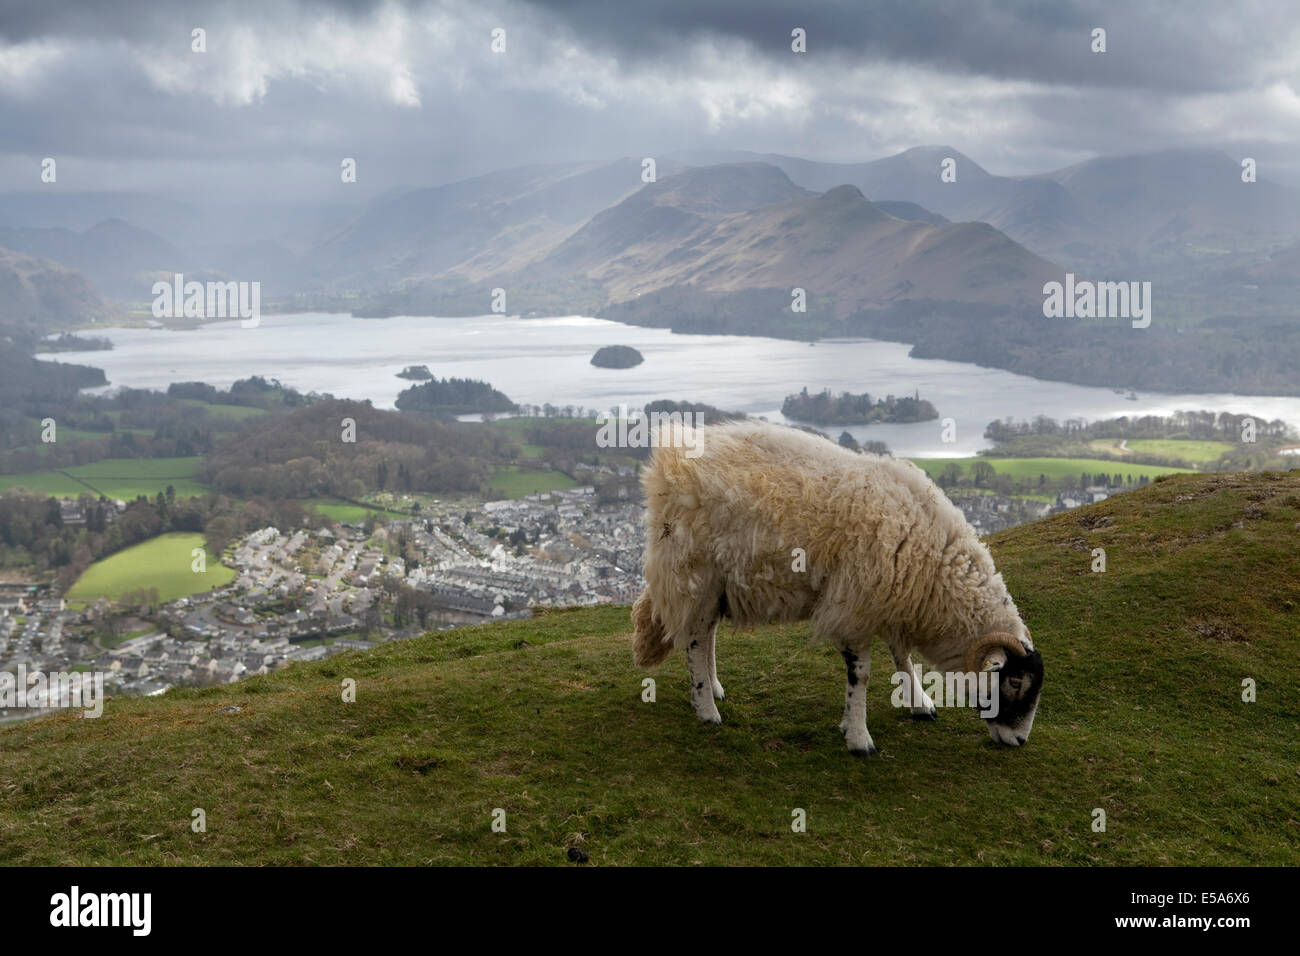 A sheep grazes a ridge overlooking Keswick and Derwentwater in the English Lake District - Stock Image